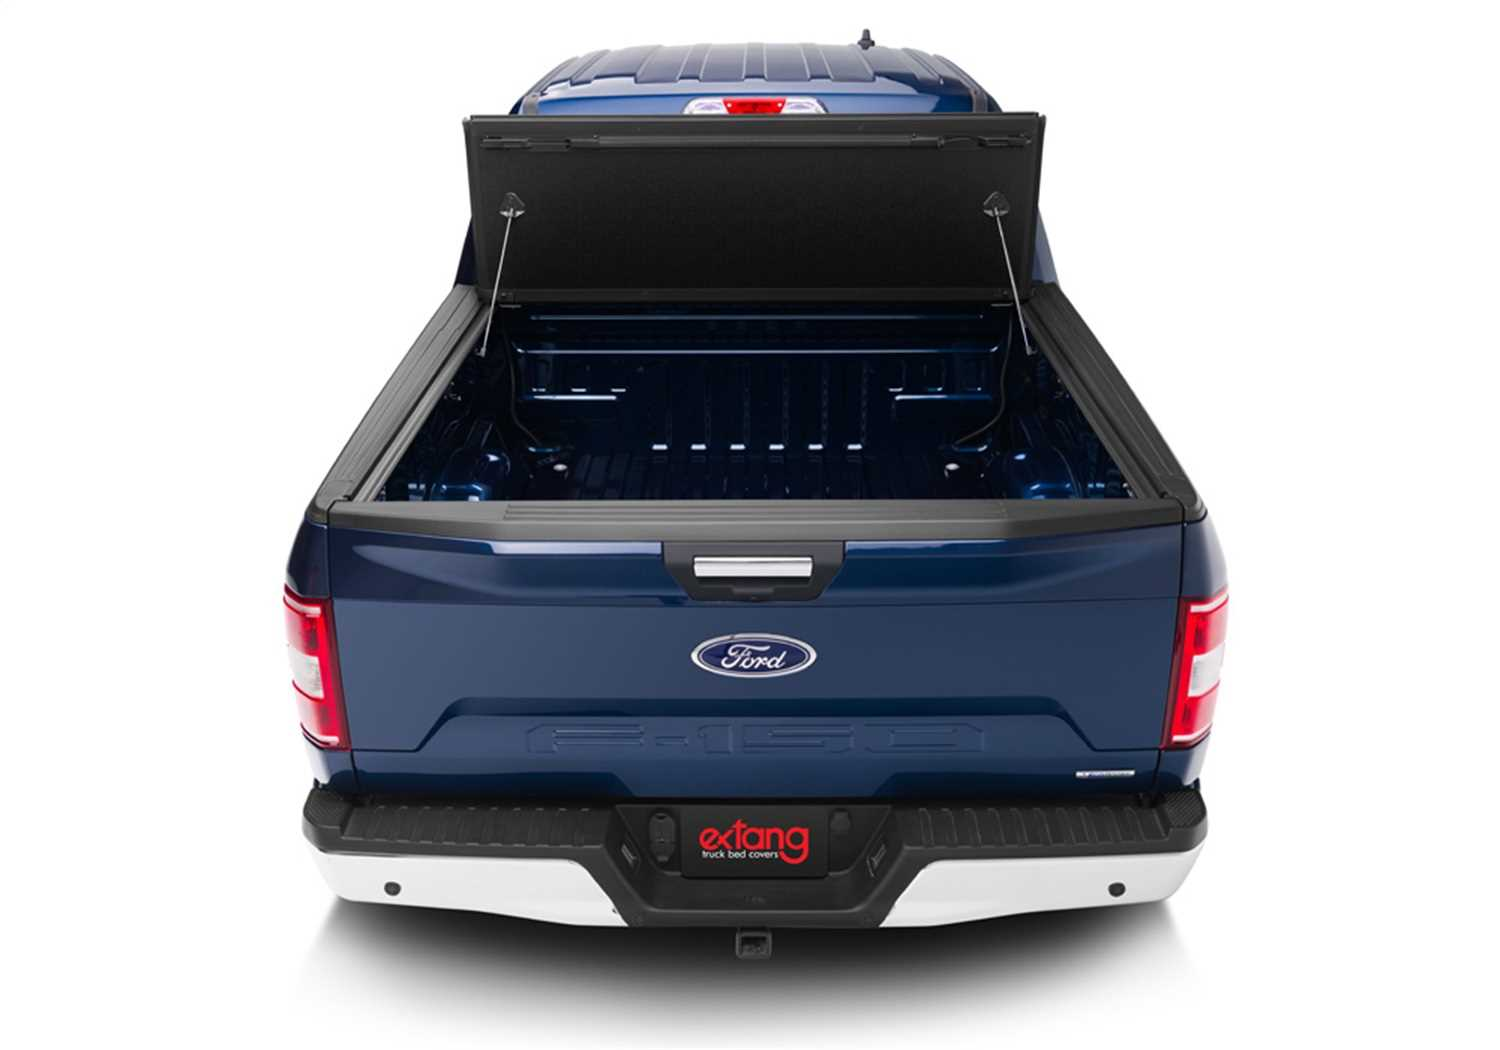 85410 Extang Xceed Tonneau Cover